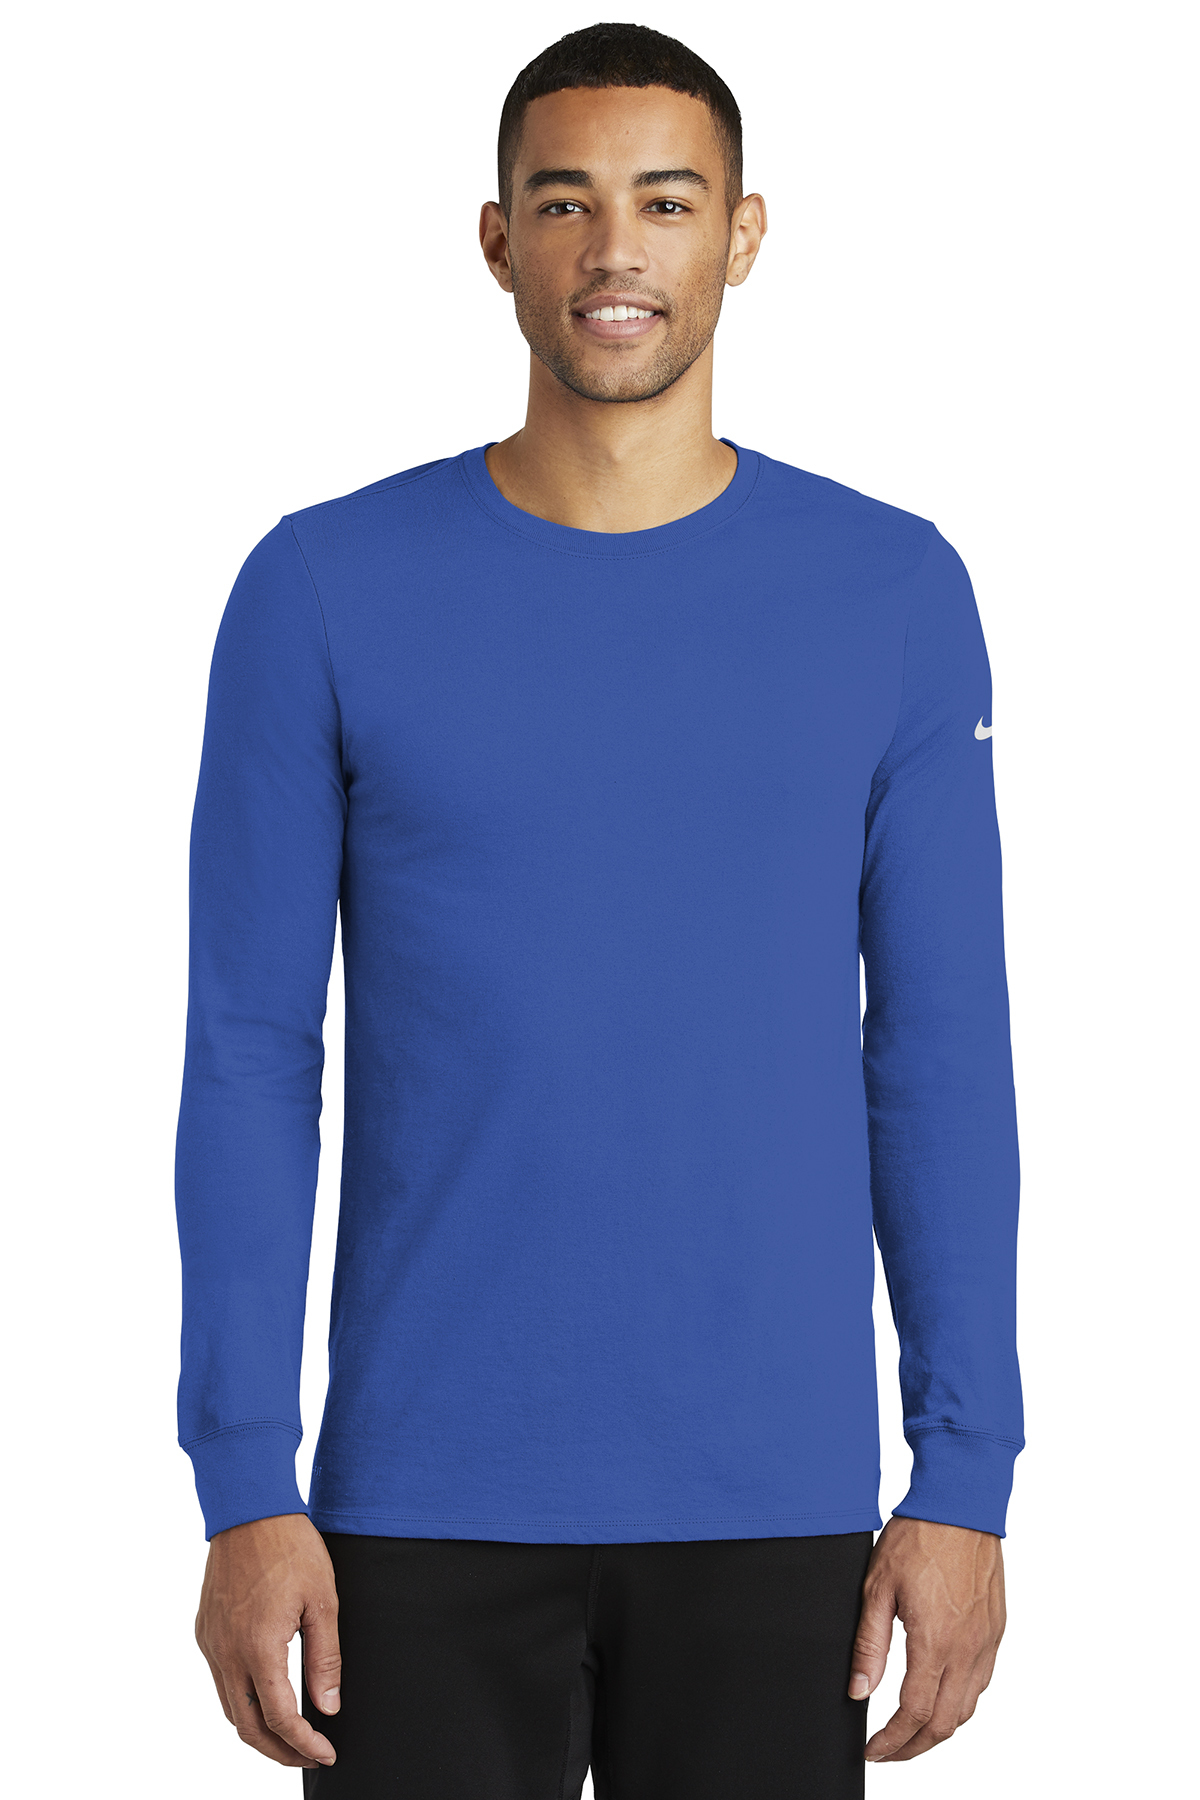 0aea08926 Nike Dri-FIT Cotton/Poly Long Sleeve Tee | Performance | T-Shirts ...